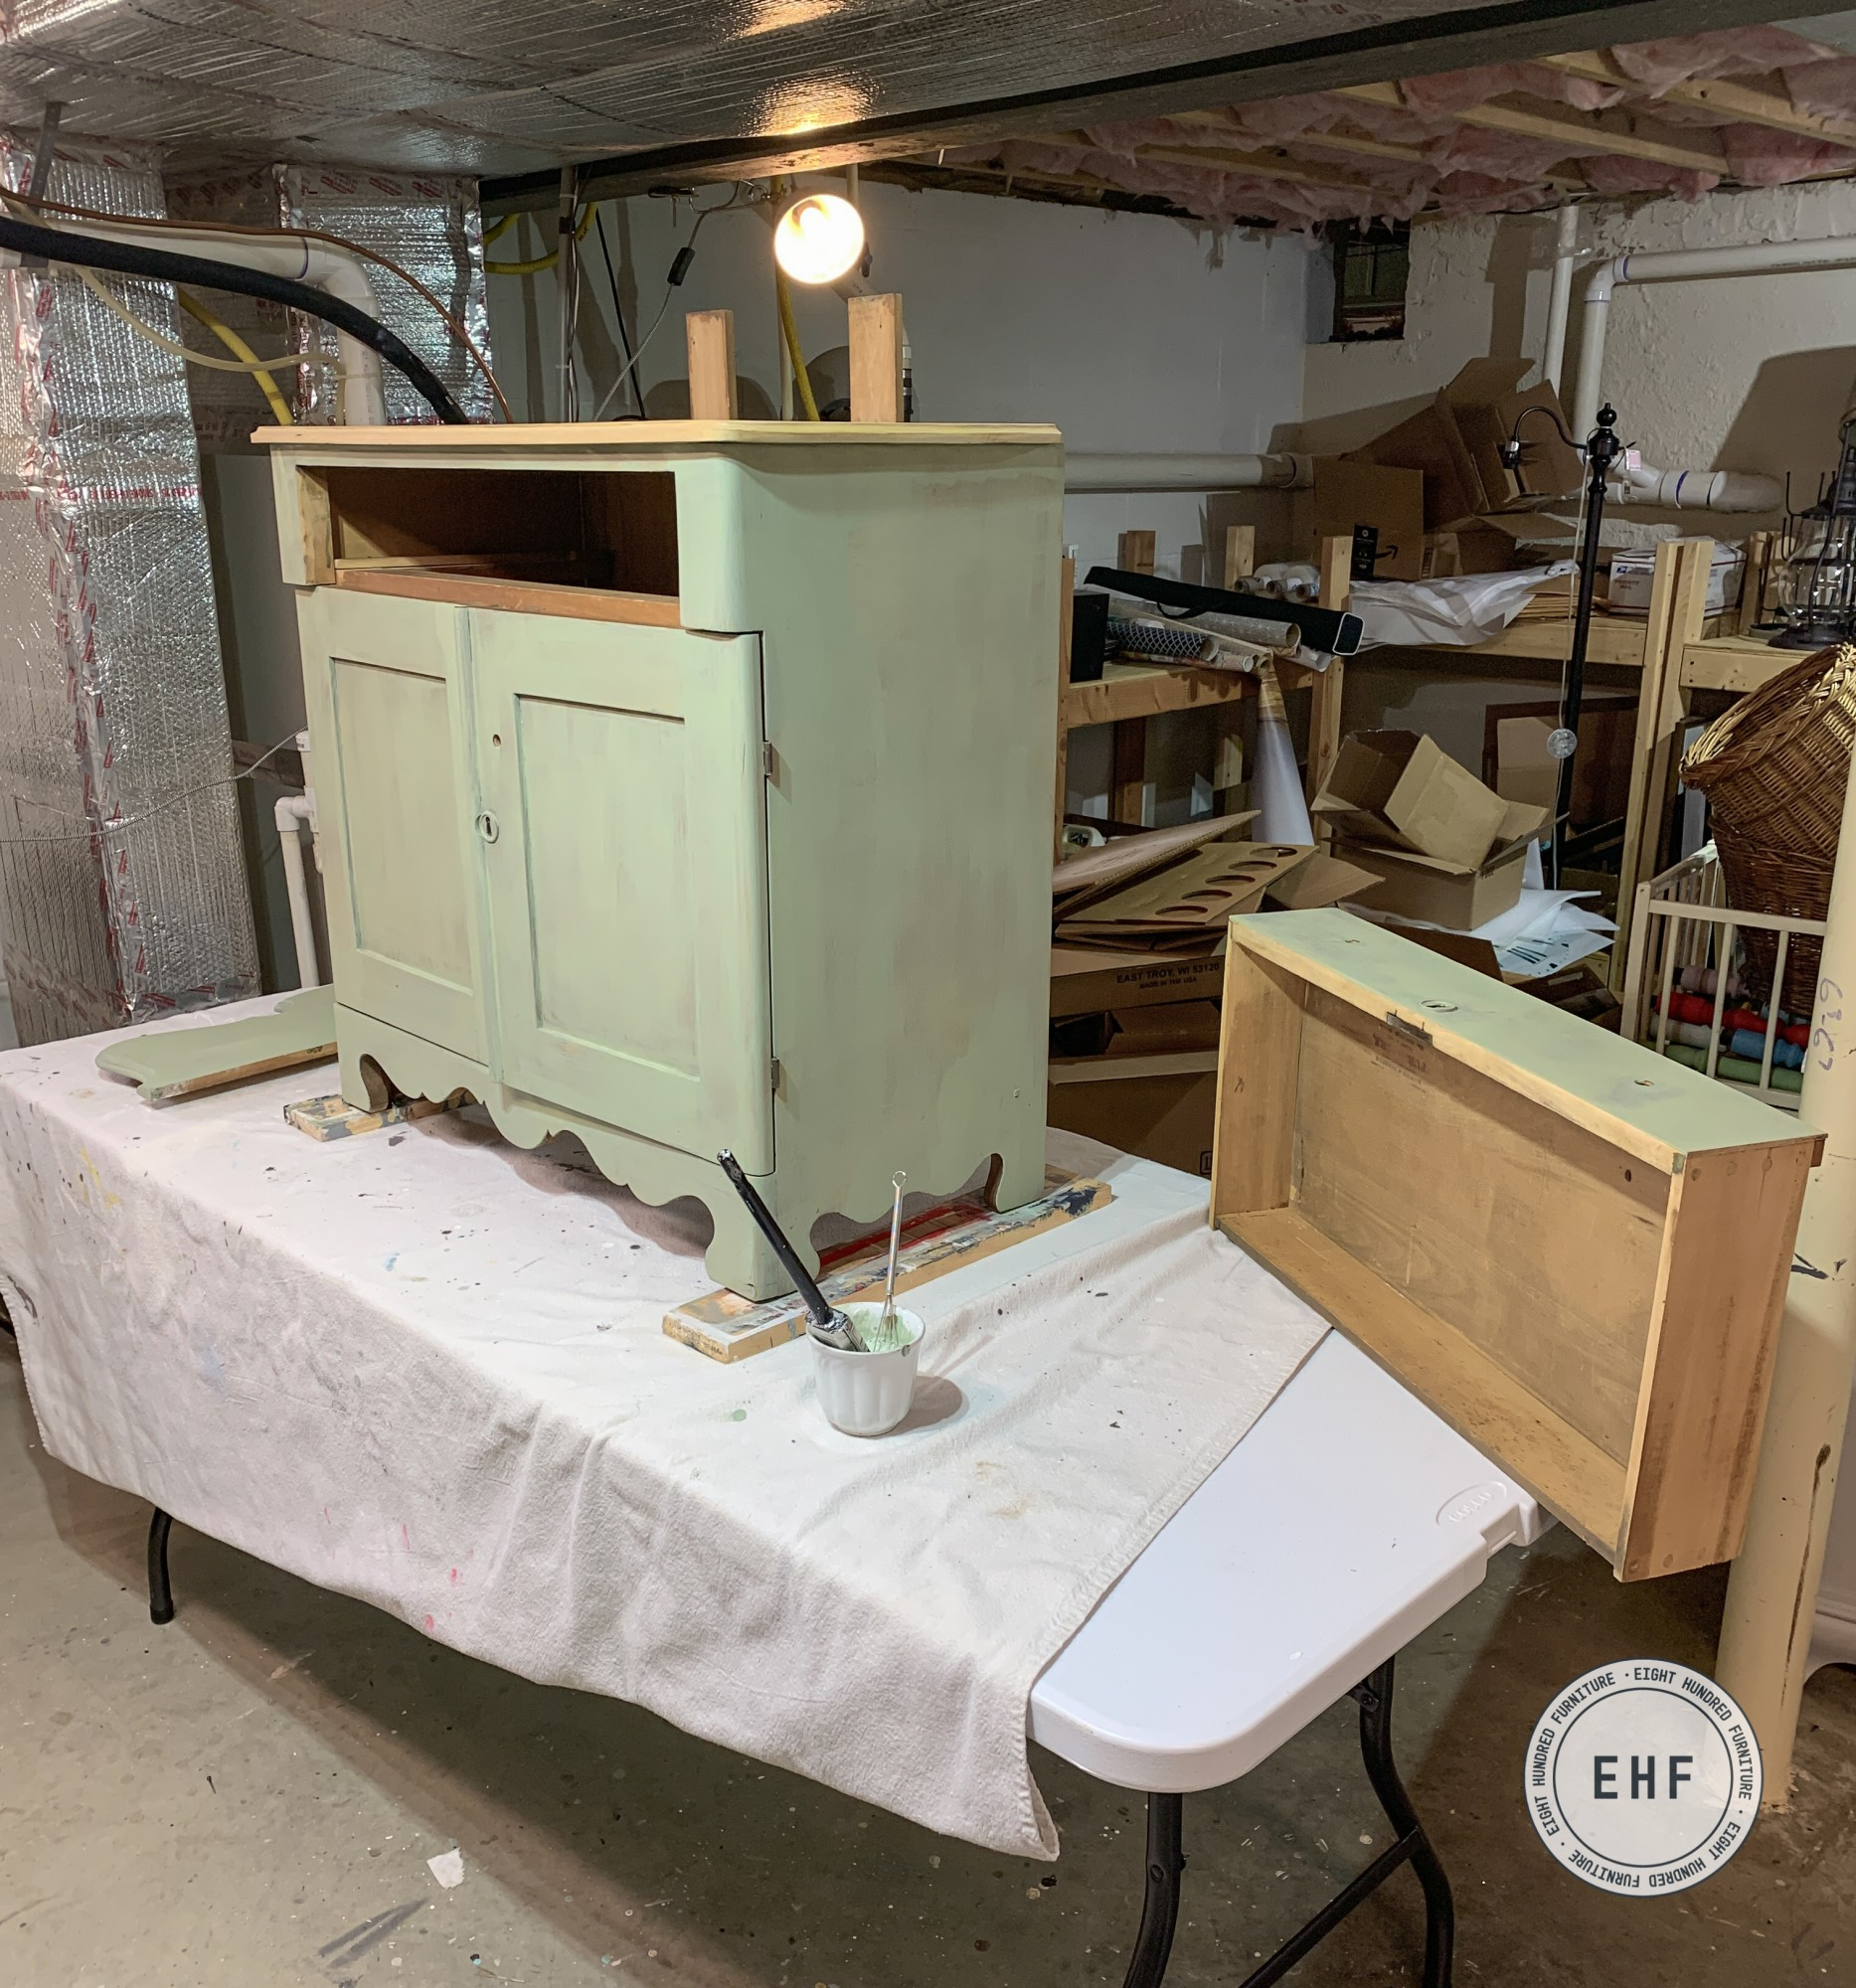 Antique washstand painted in Layla's Mint by Miss Mustard Seed's Milk Paint